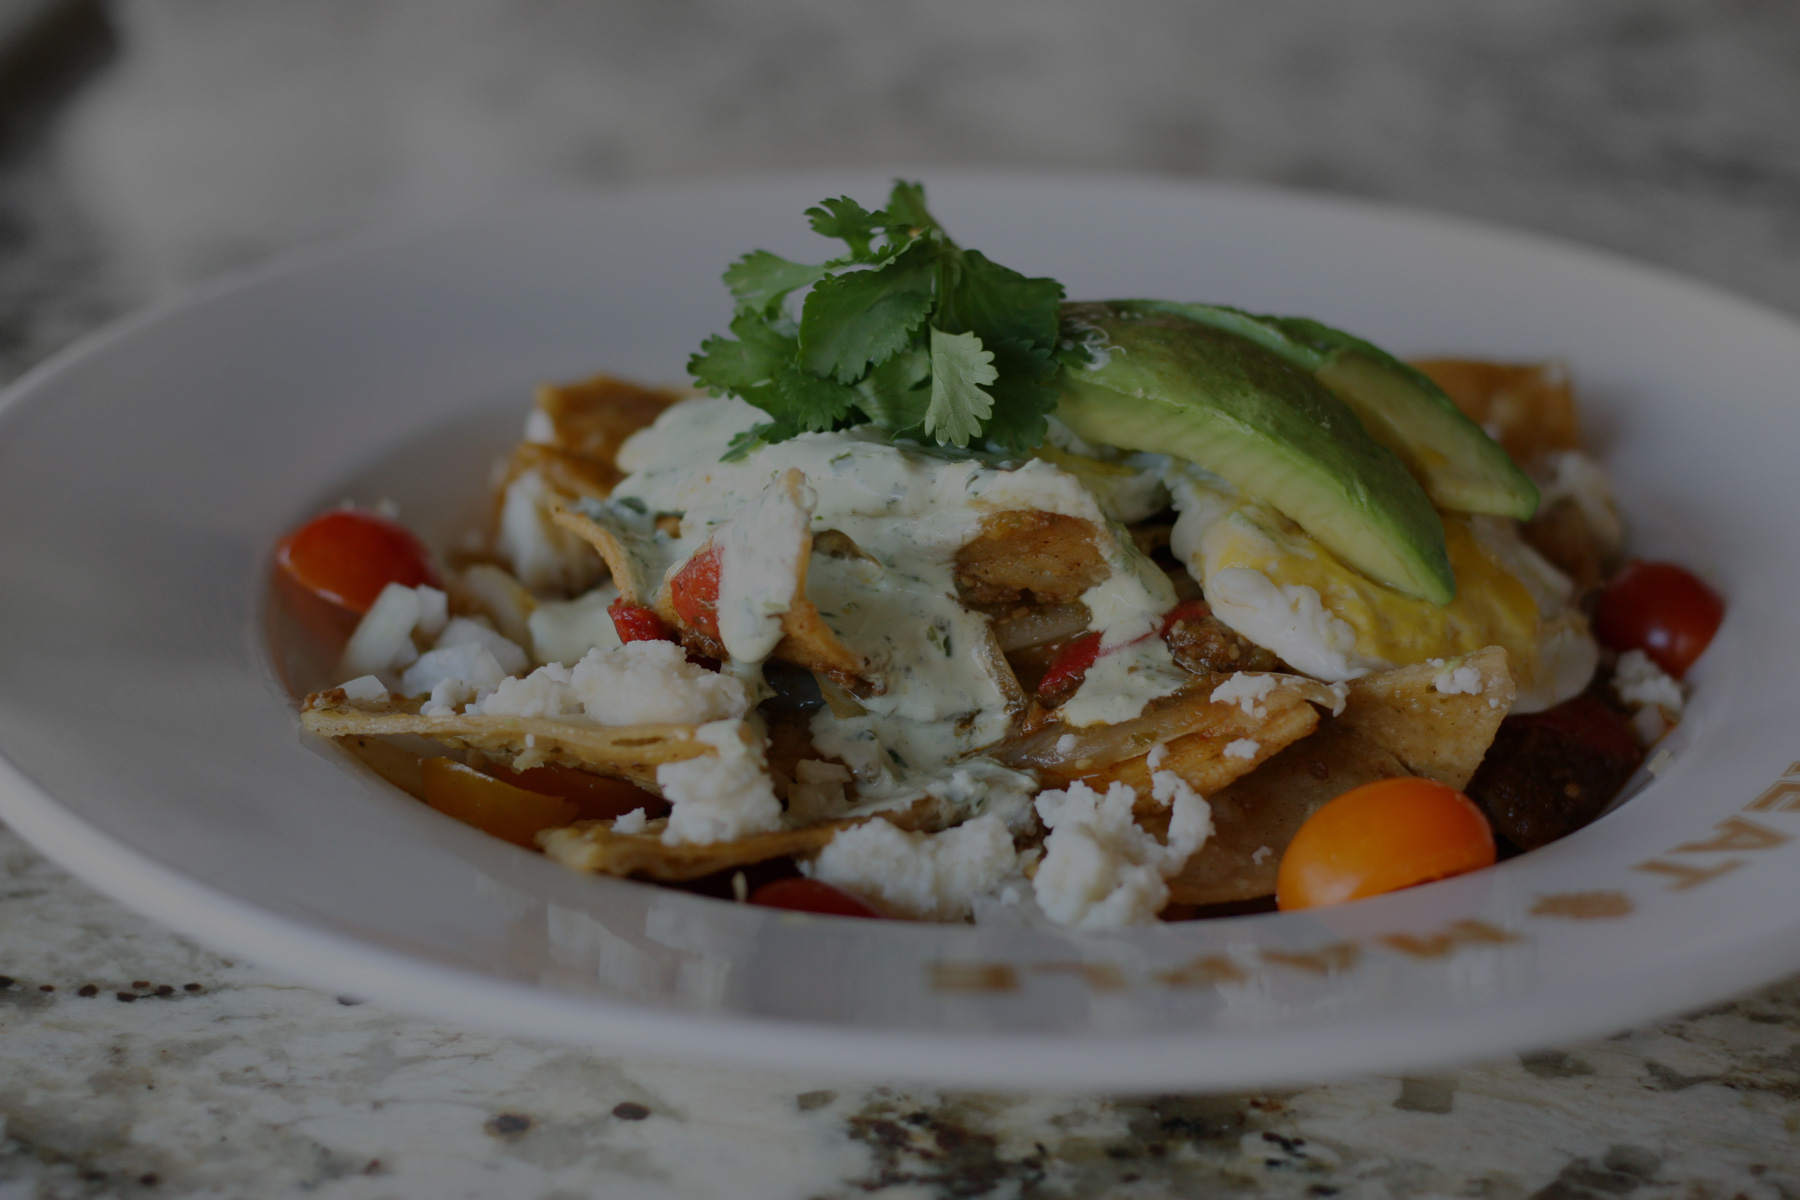 Brunch Menu - Chilaquiles